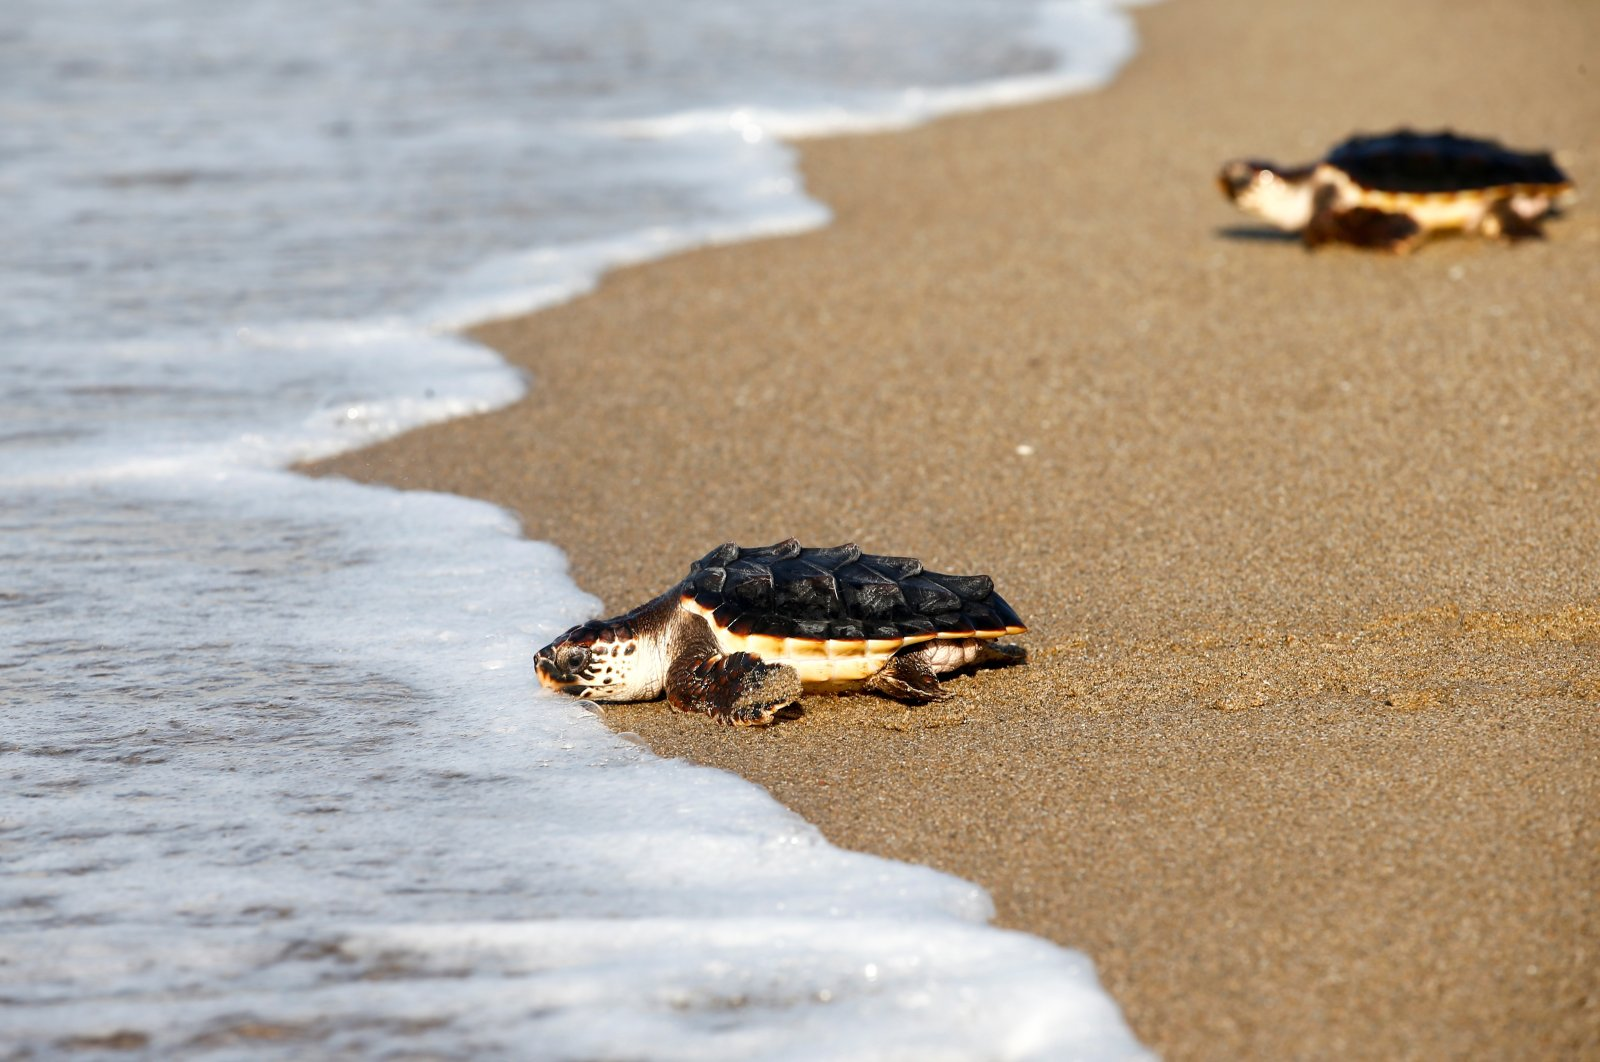 Loggerhead sea turtles are released by CRAM Foundation at a beach in Castelldefels, Barcelona, Spain, Aug. 26, 2020. (EPA Photo)